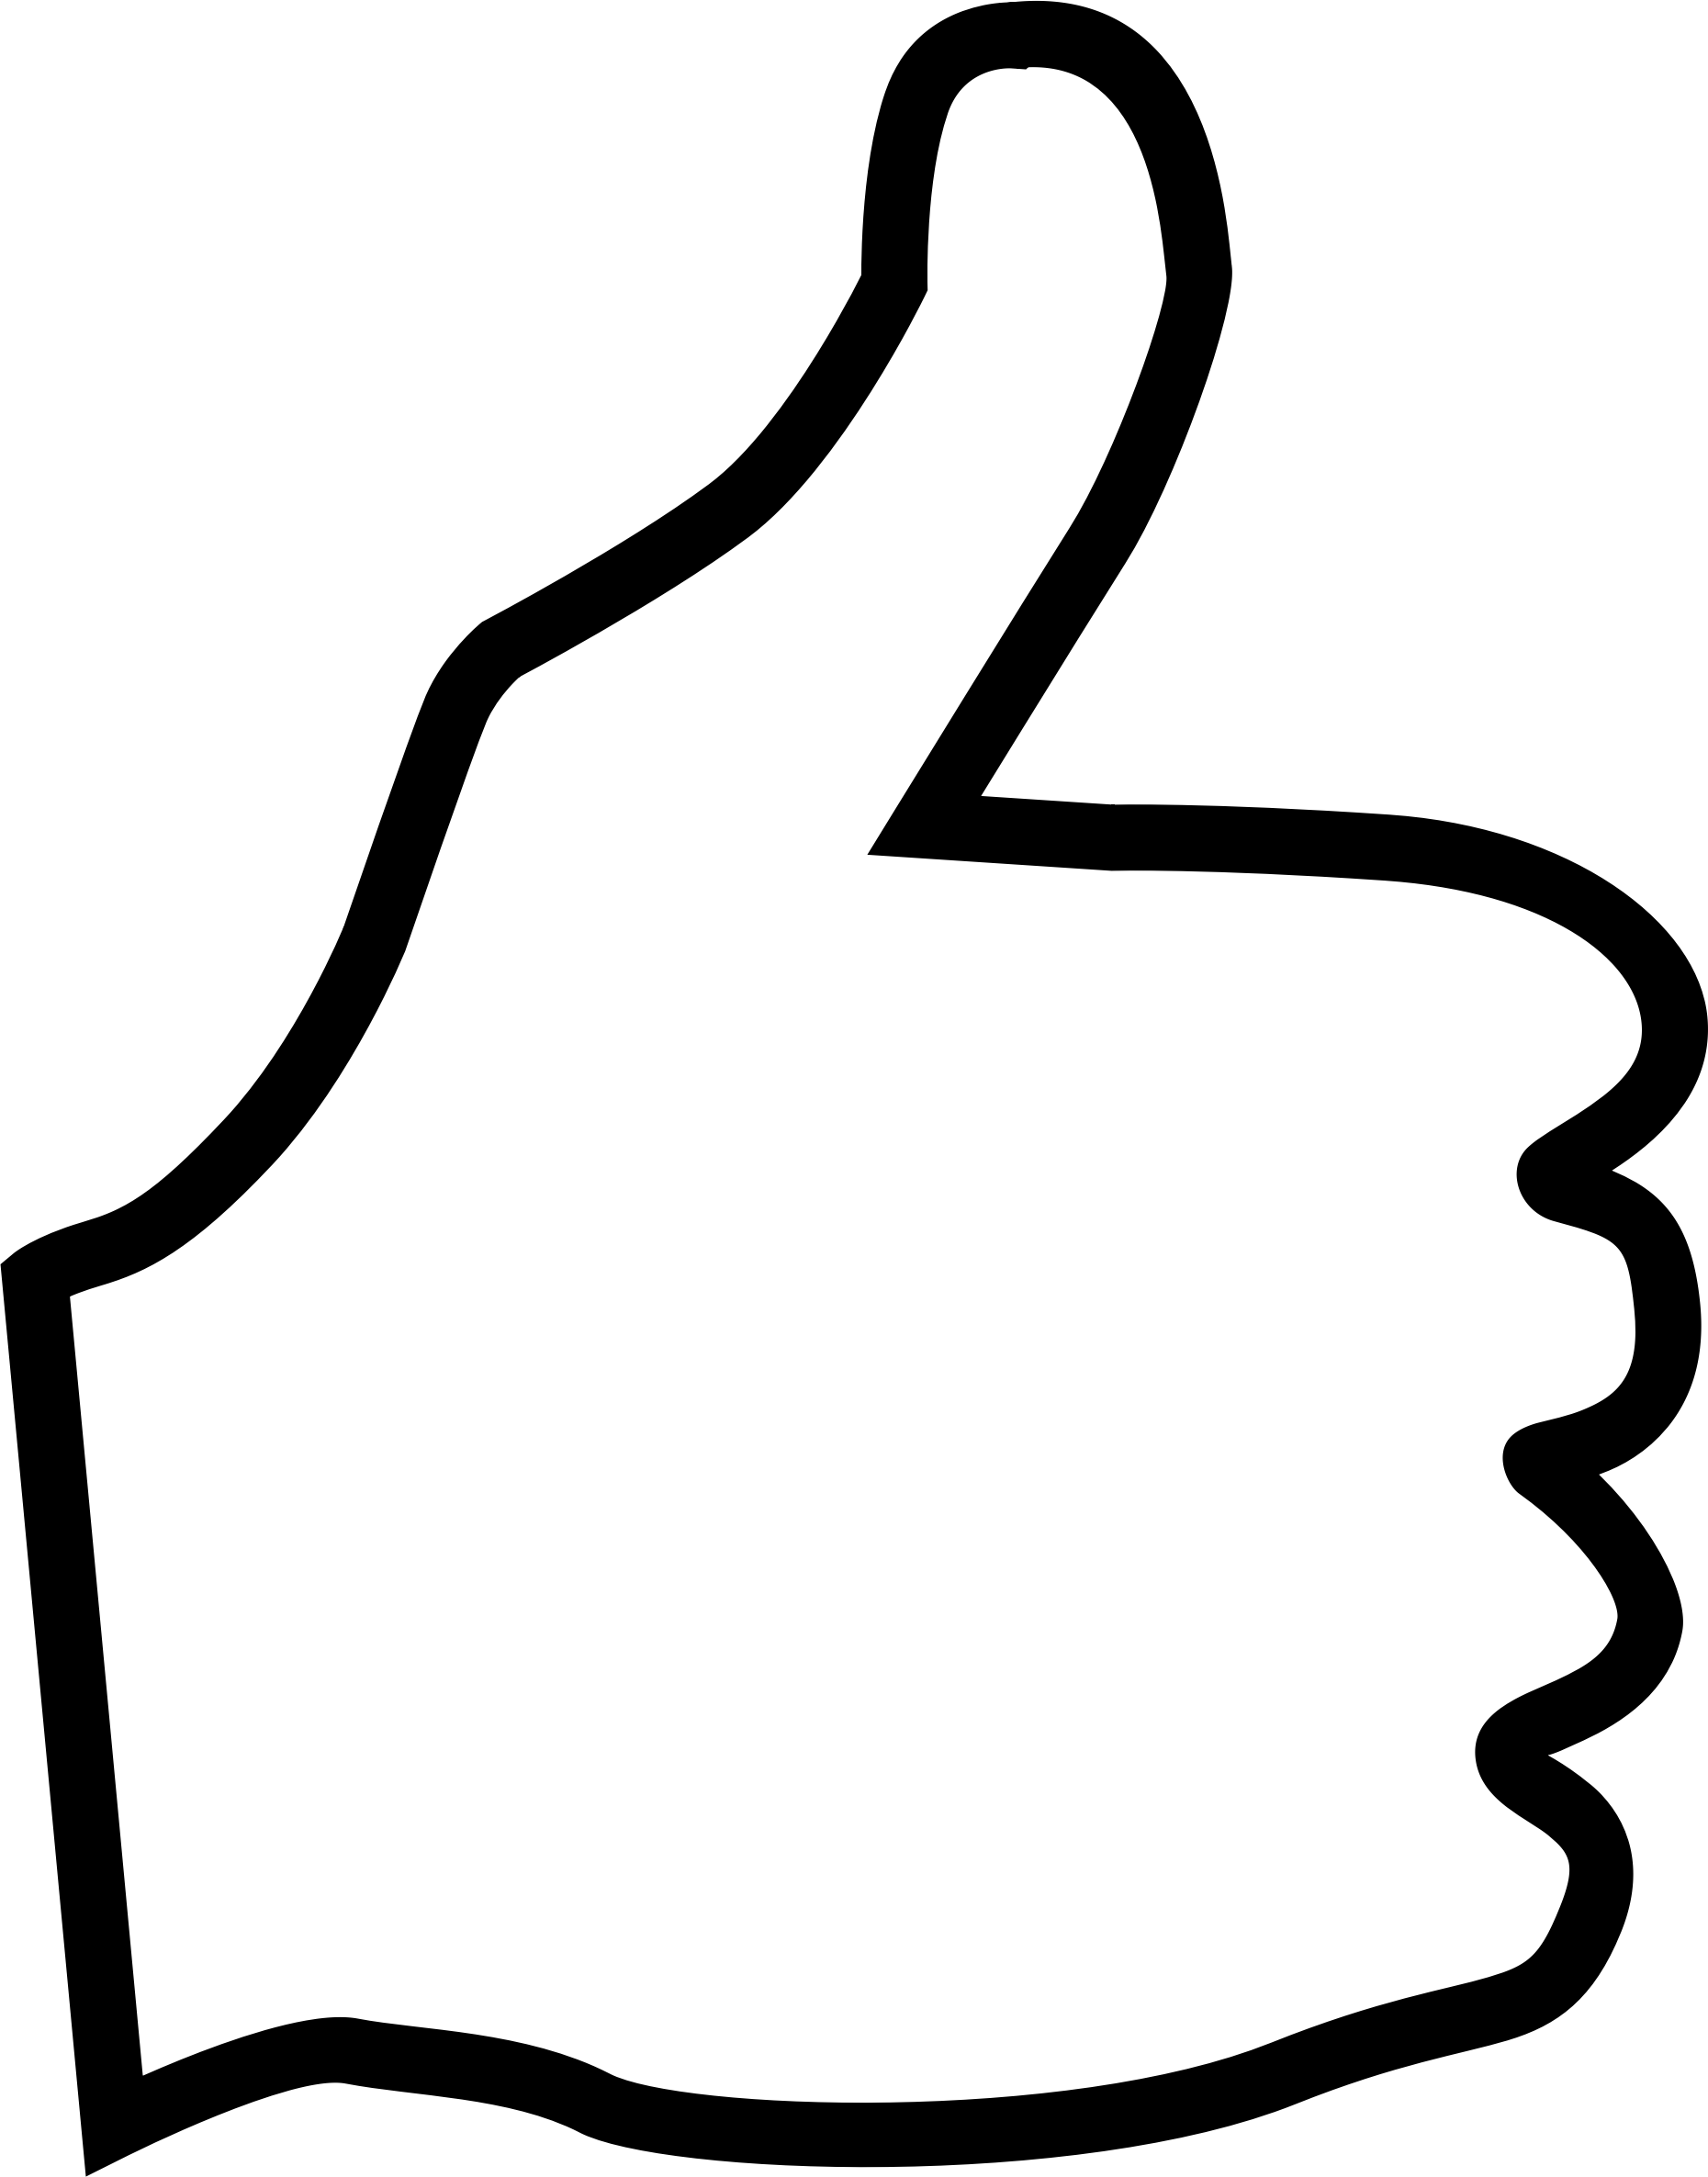 Free Thumbs Up, Download Free Clip Art, Free Clip Art on Clipart Library.